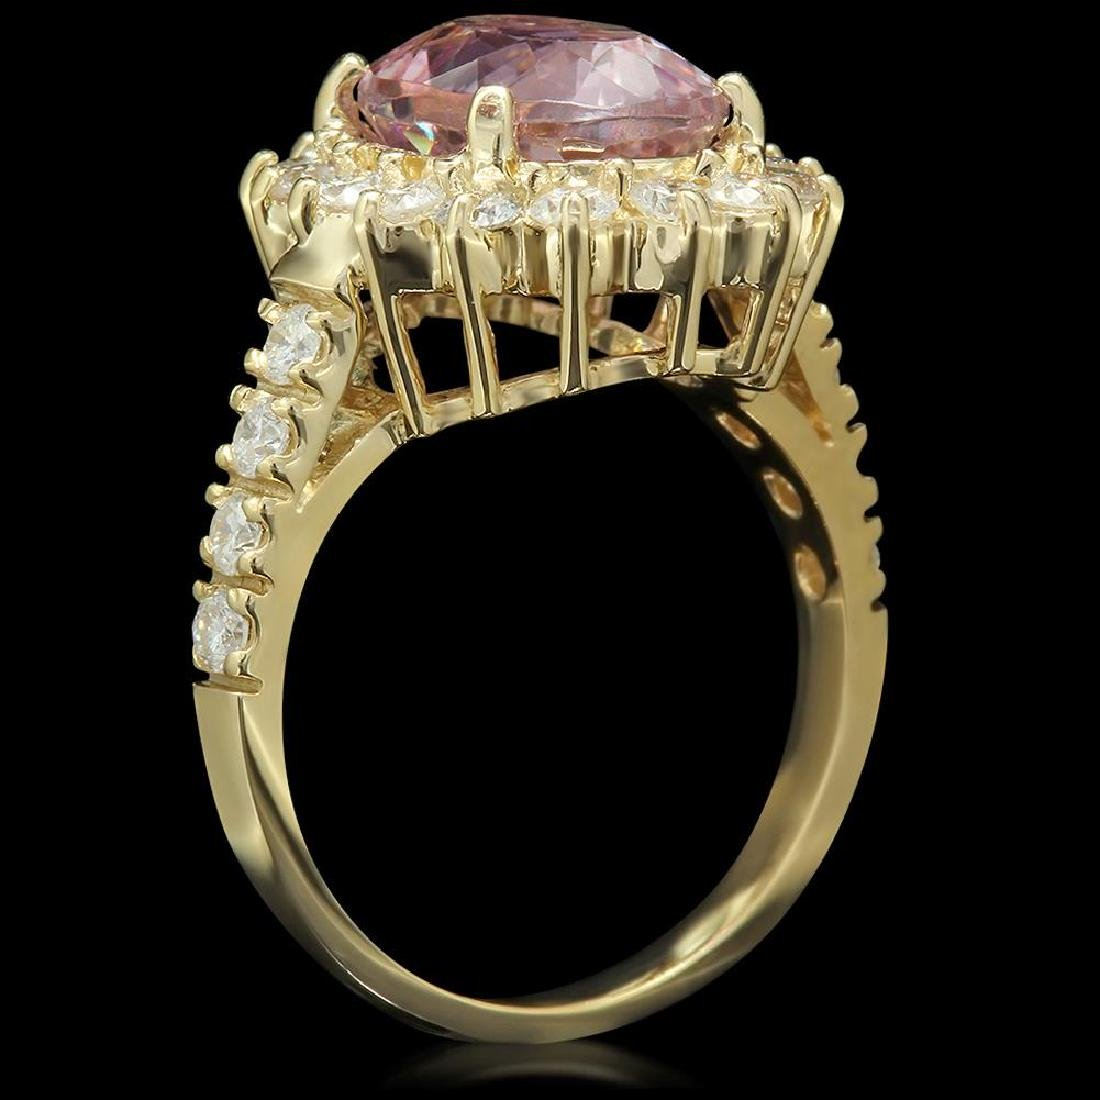 14K Gold 4.50ct Kunzite 1.21ct Diamond Ring - 2